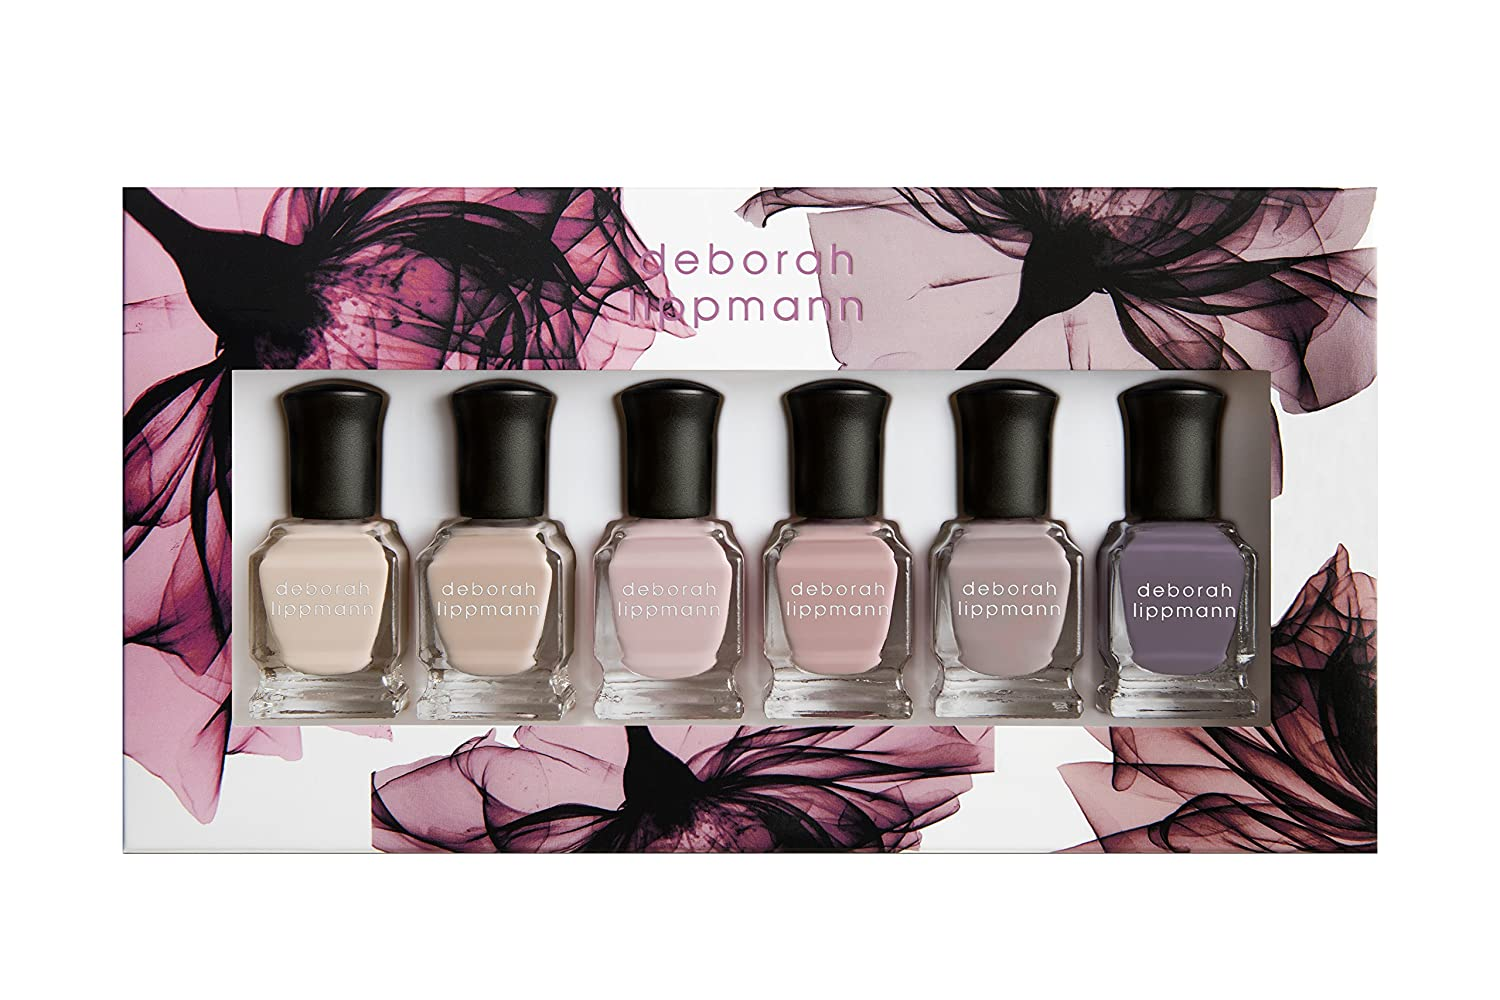 Amazon.com : Deborah Lippmann Limited Edition Bed Of Roses : Beauty